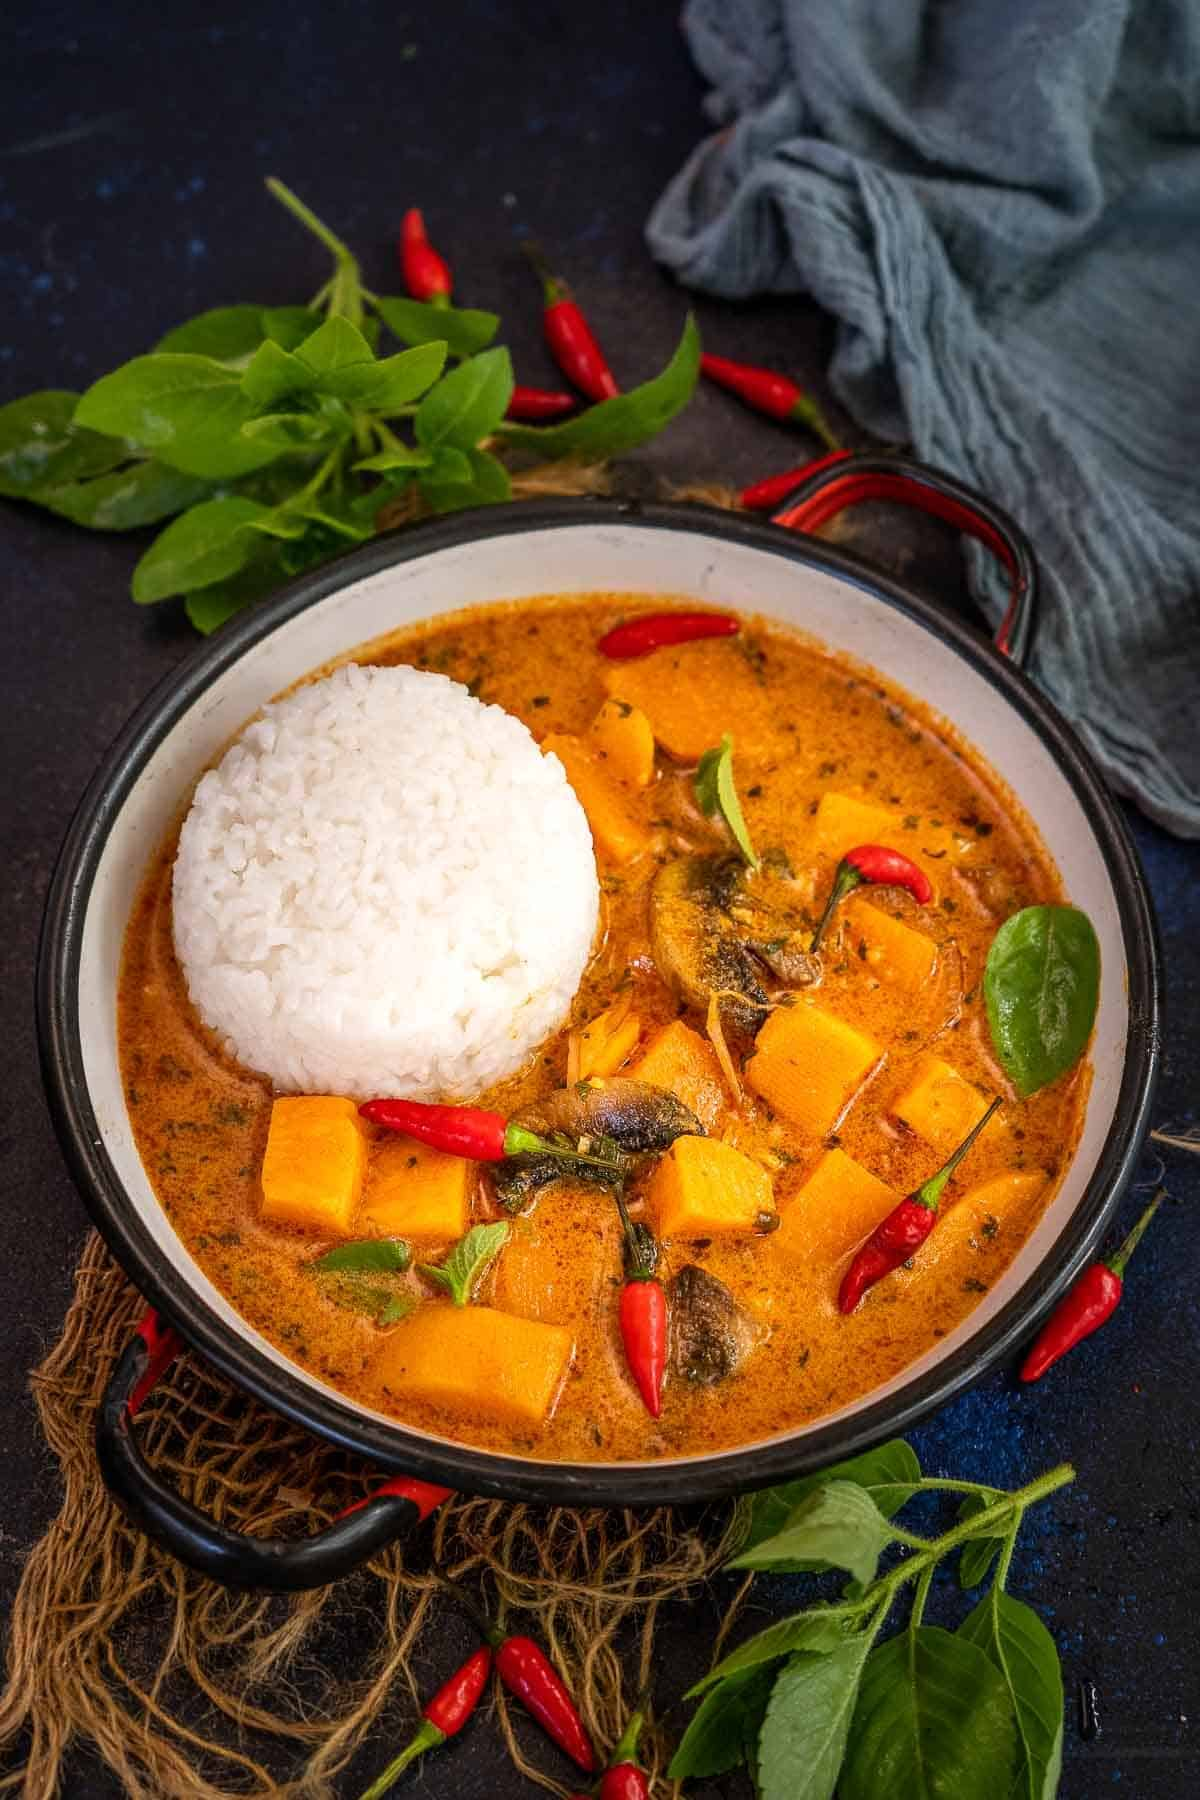 Thai sweet potato curry served in a bowl.